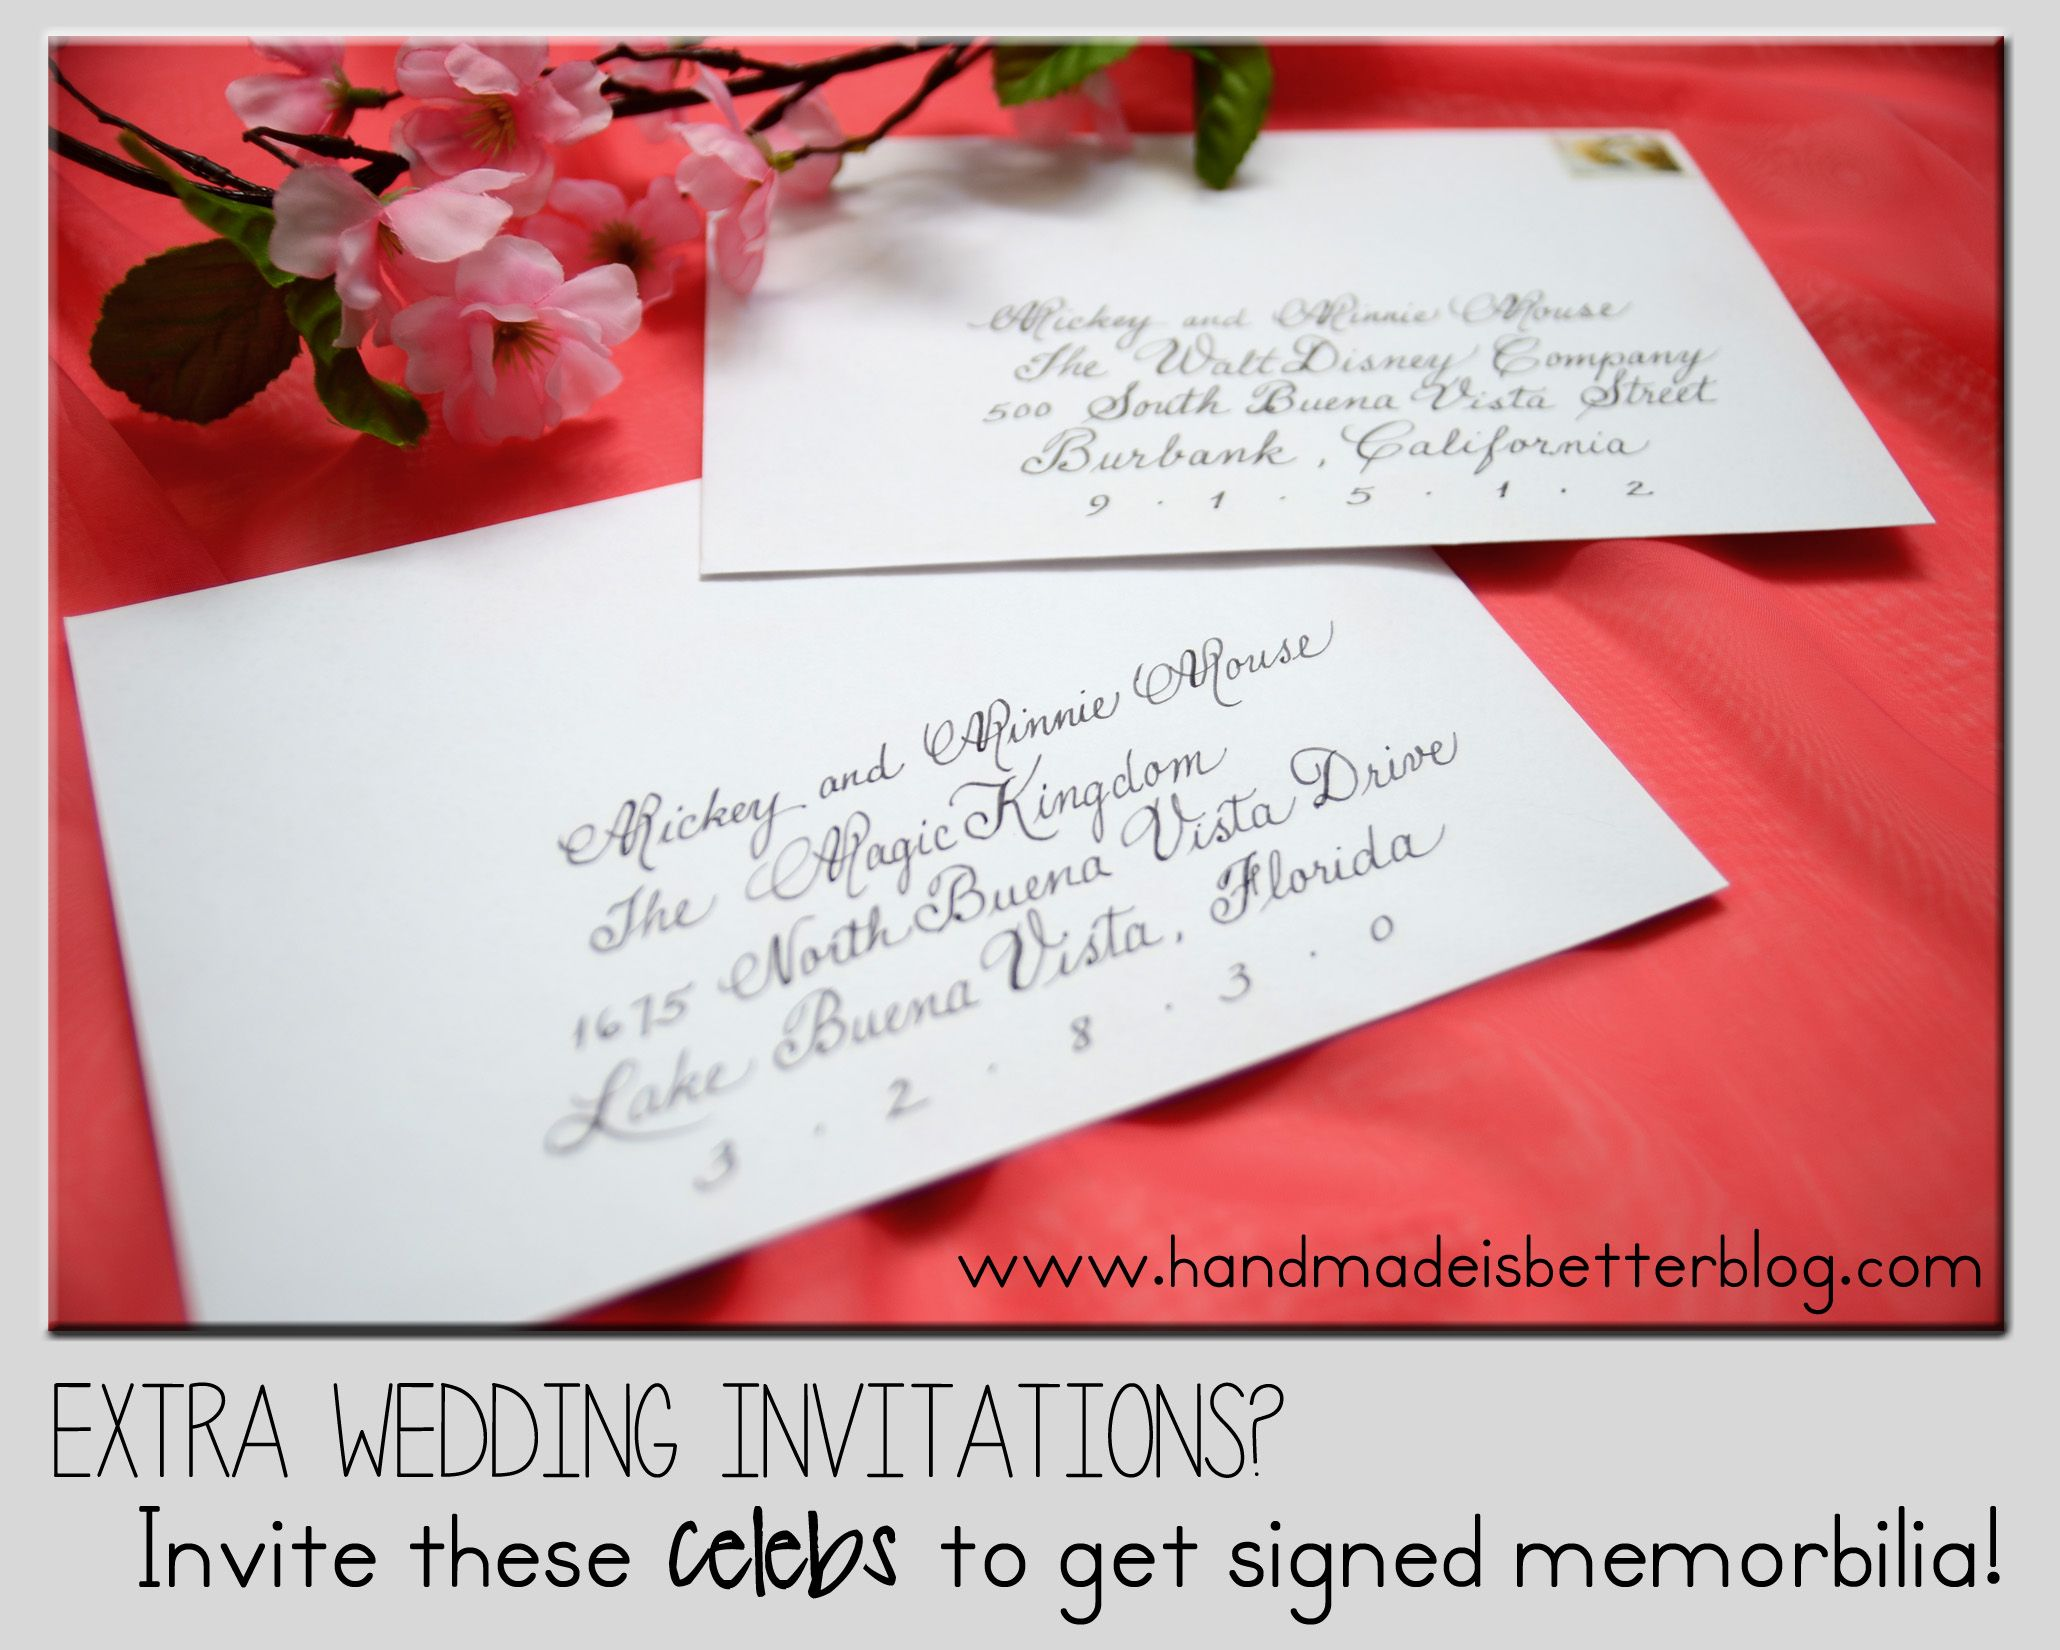 When Do You Send Invitations For Wedding: A List Of Celebrities To Invite To Your Wedding. Most Will